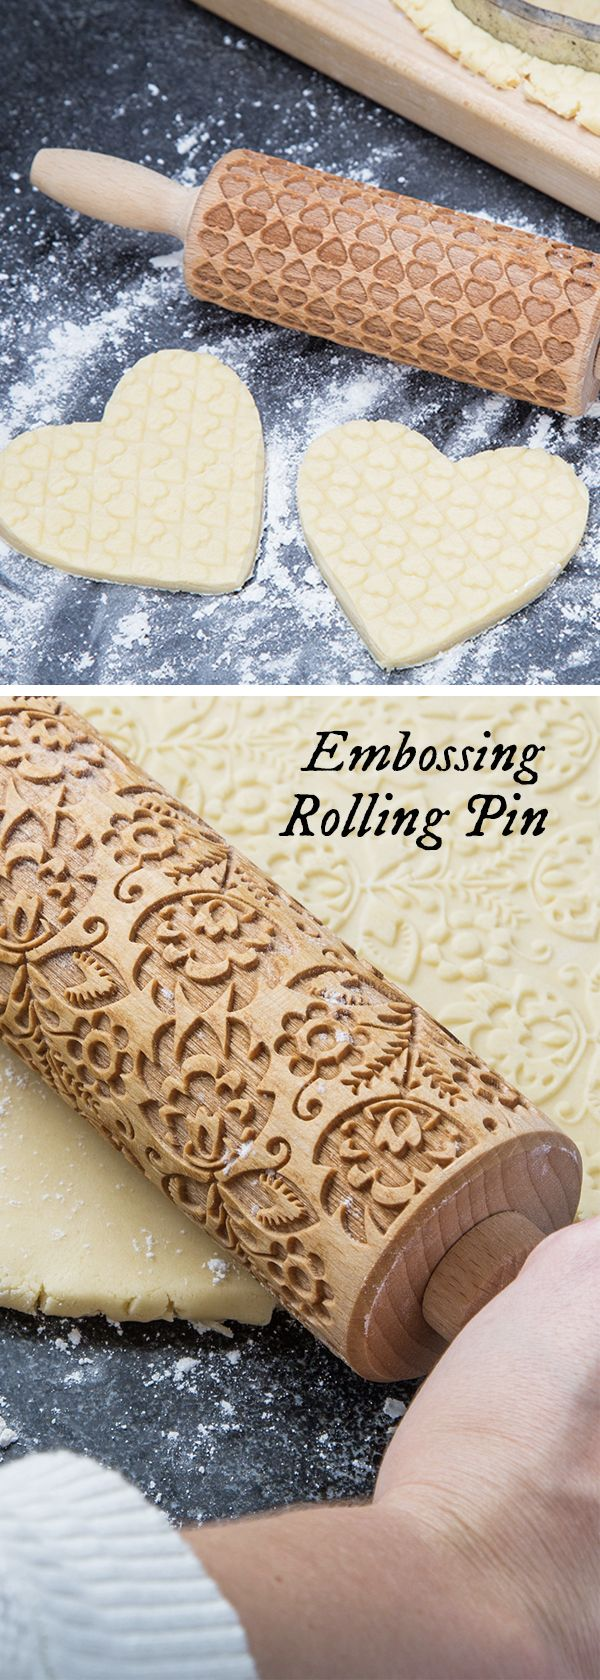 Baked goods with a professional touch. Roll these laser-cut, beech wood rolling pins over fresh dough. Their patterned grooves emboss baked goods, giving an ornate, professional-looking finish.